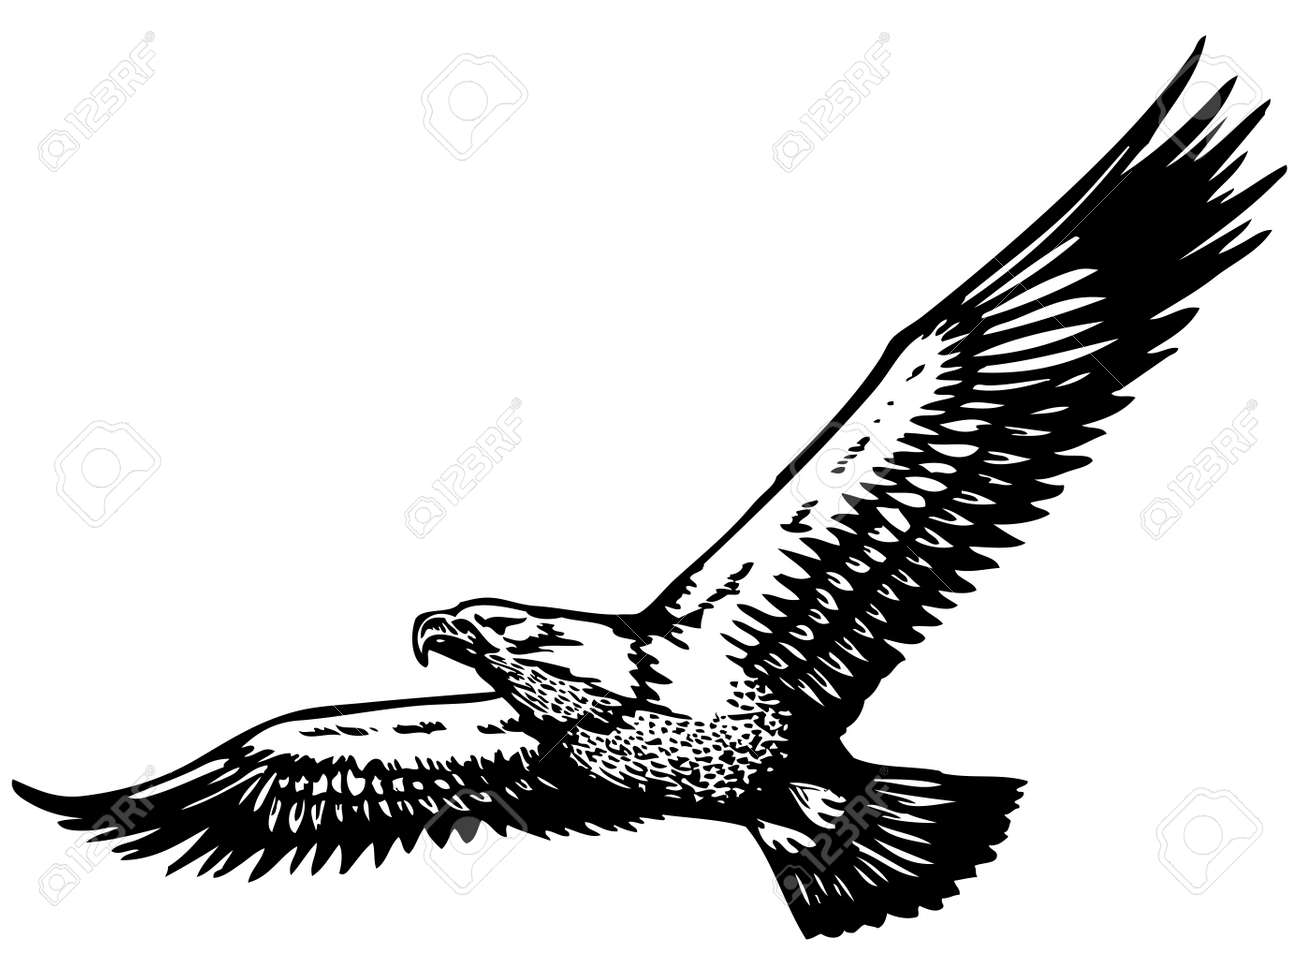 1 069 bald eagle flying cliparts stock vector and royalty free